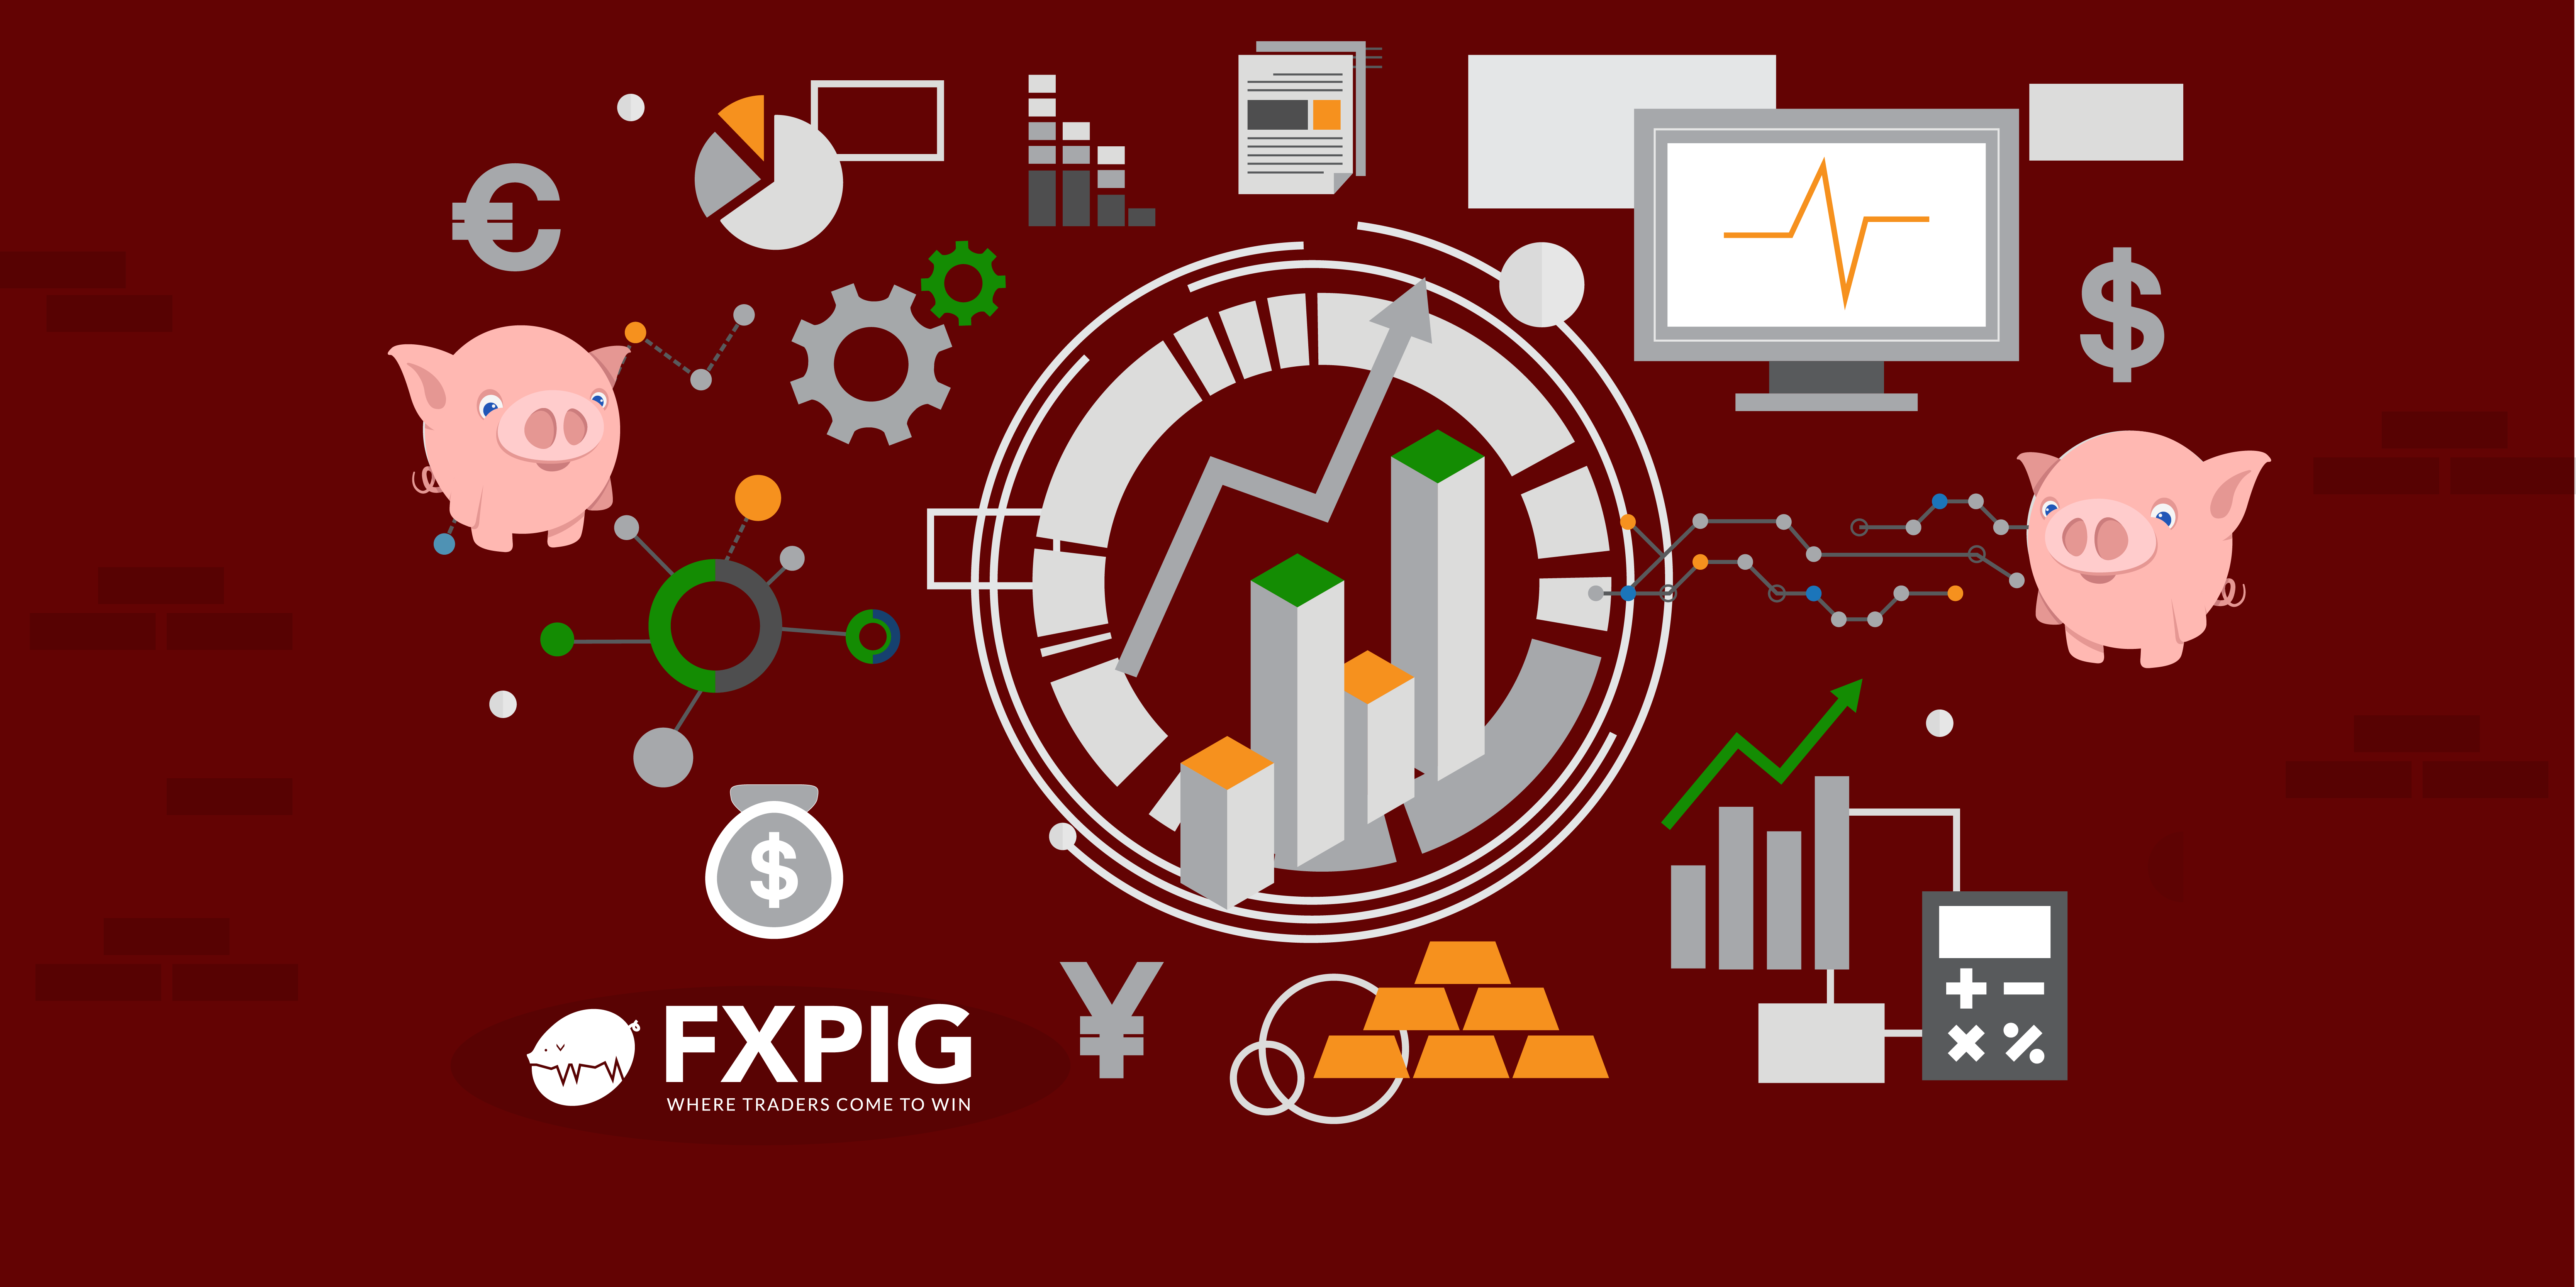 Forex_Trading_Fx_Trader_FXPIG_Currencies